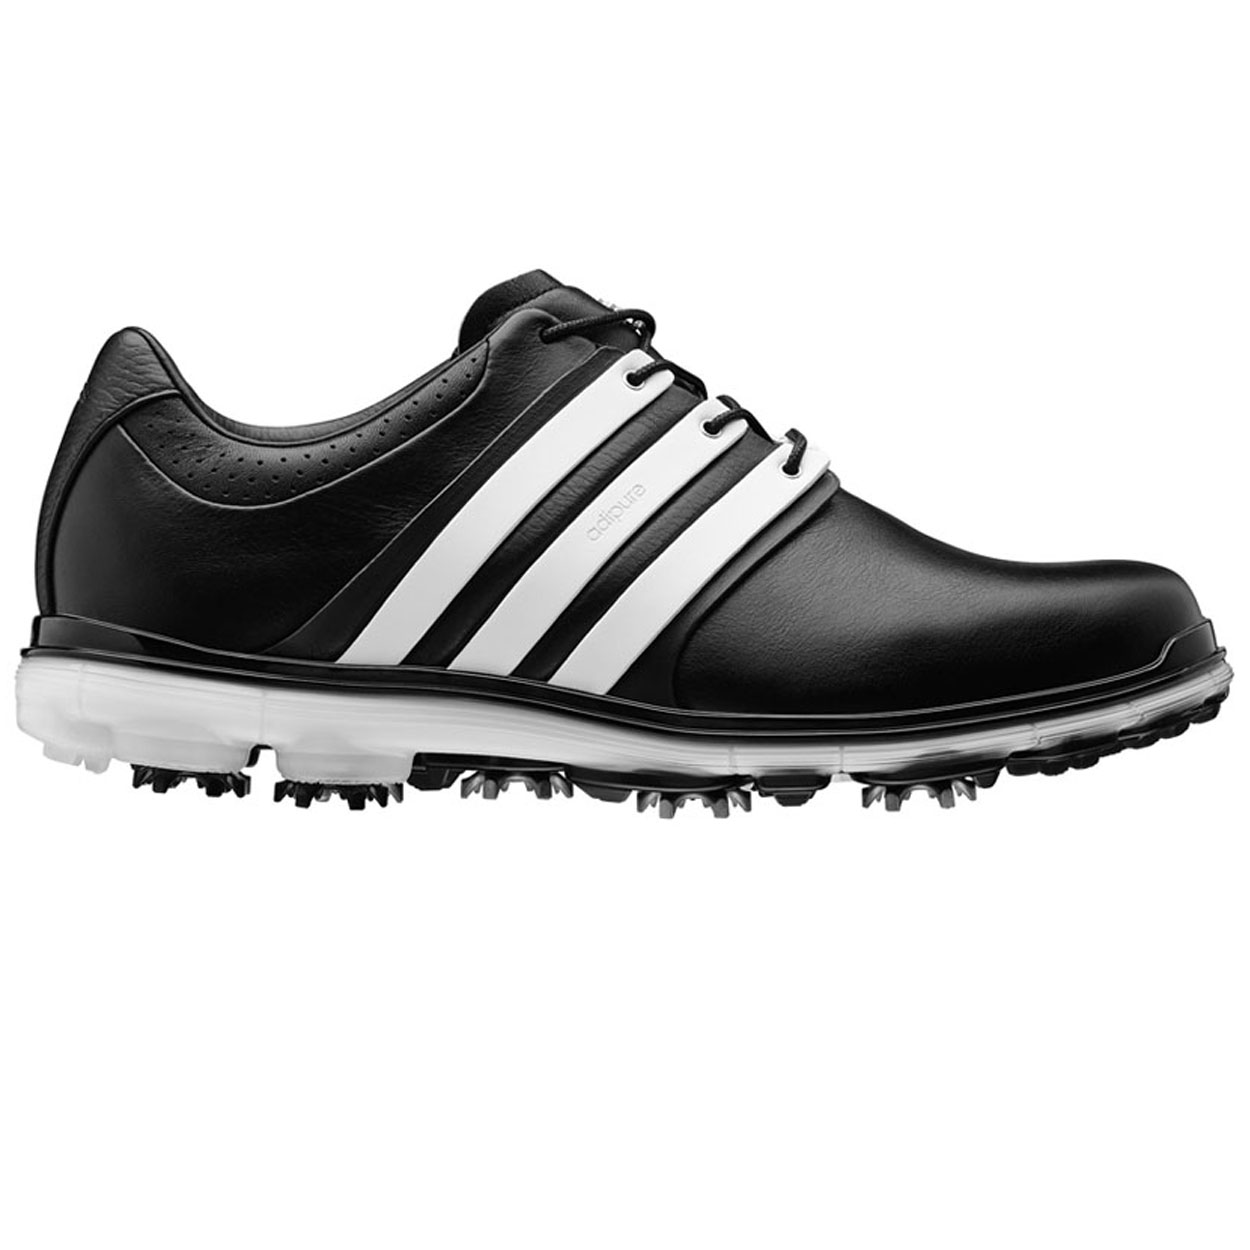 0687716d3 limited adidas shoes adidas shoes stores